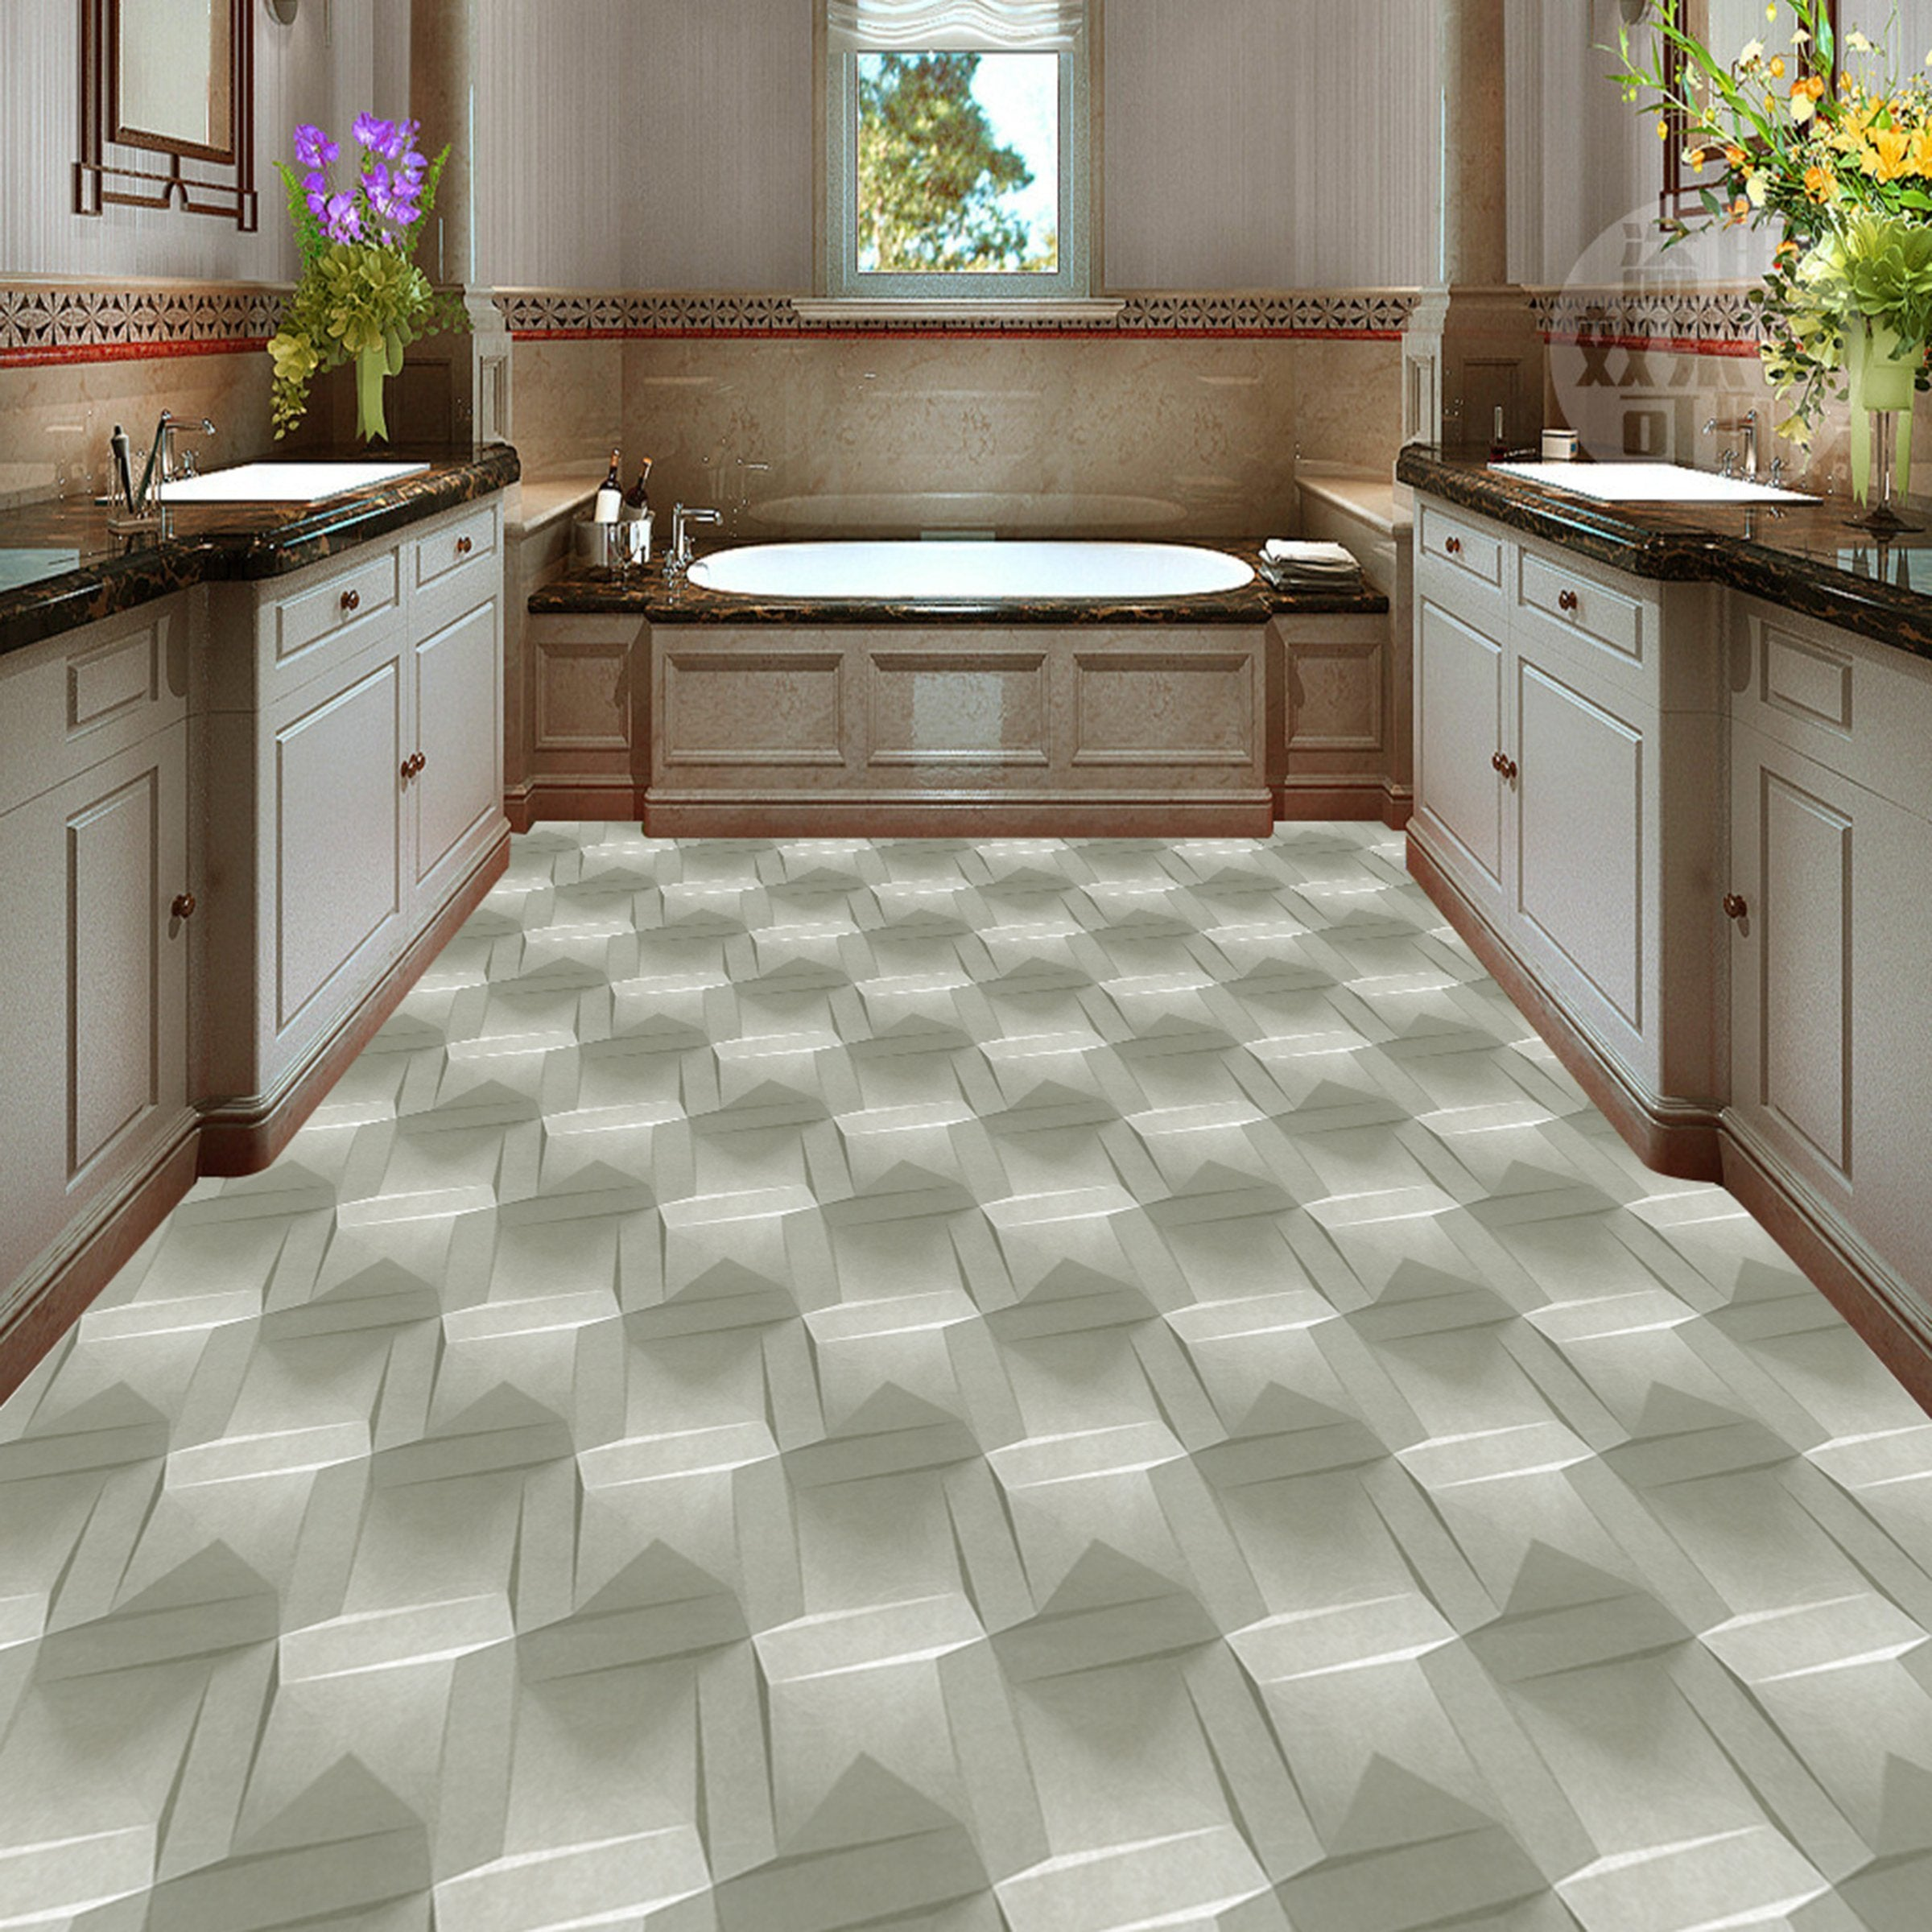 3D Geometric Patterns WG055 Floor Mural